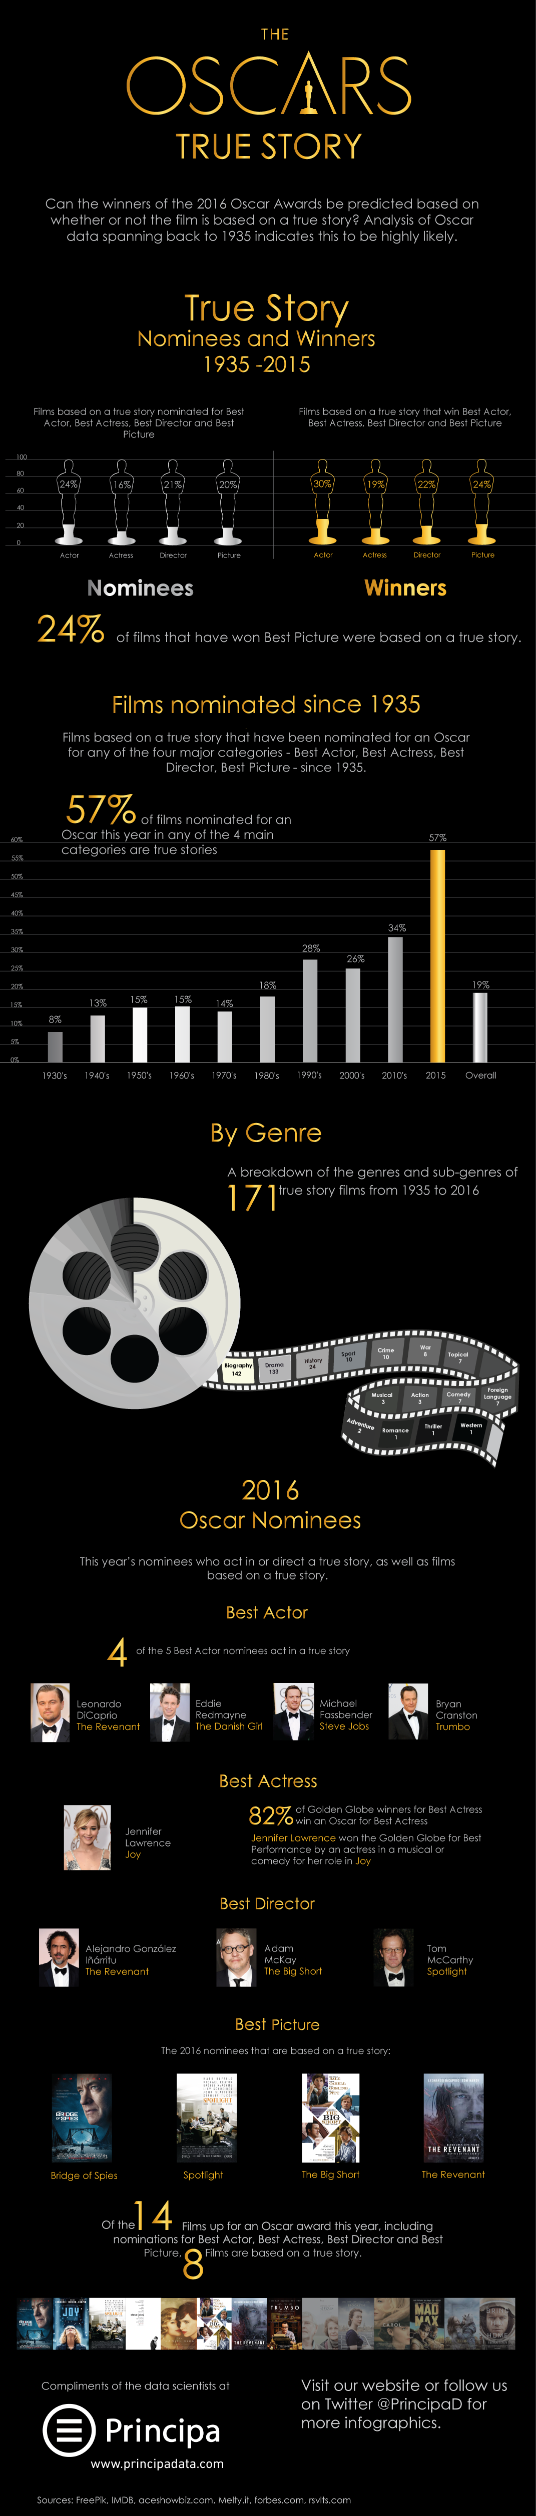 infographic-principa-predicts-oscars-true-story-oscars1.png